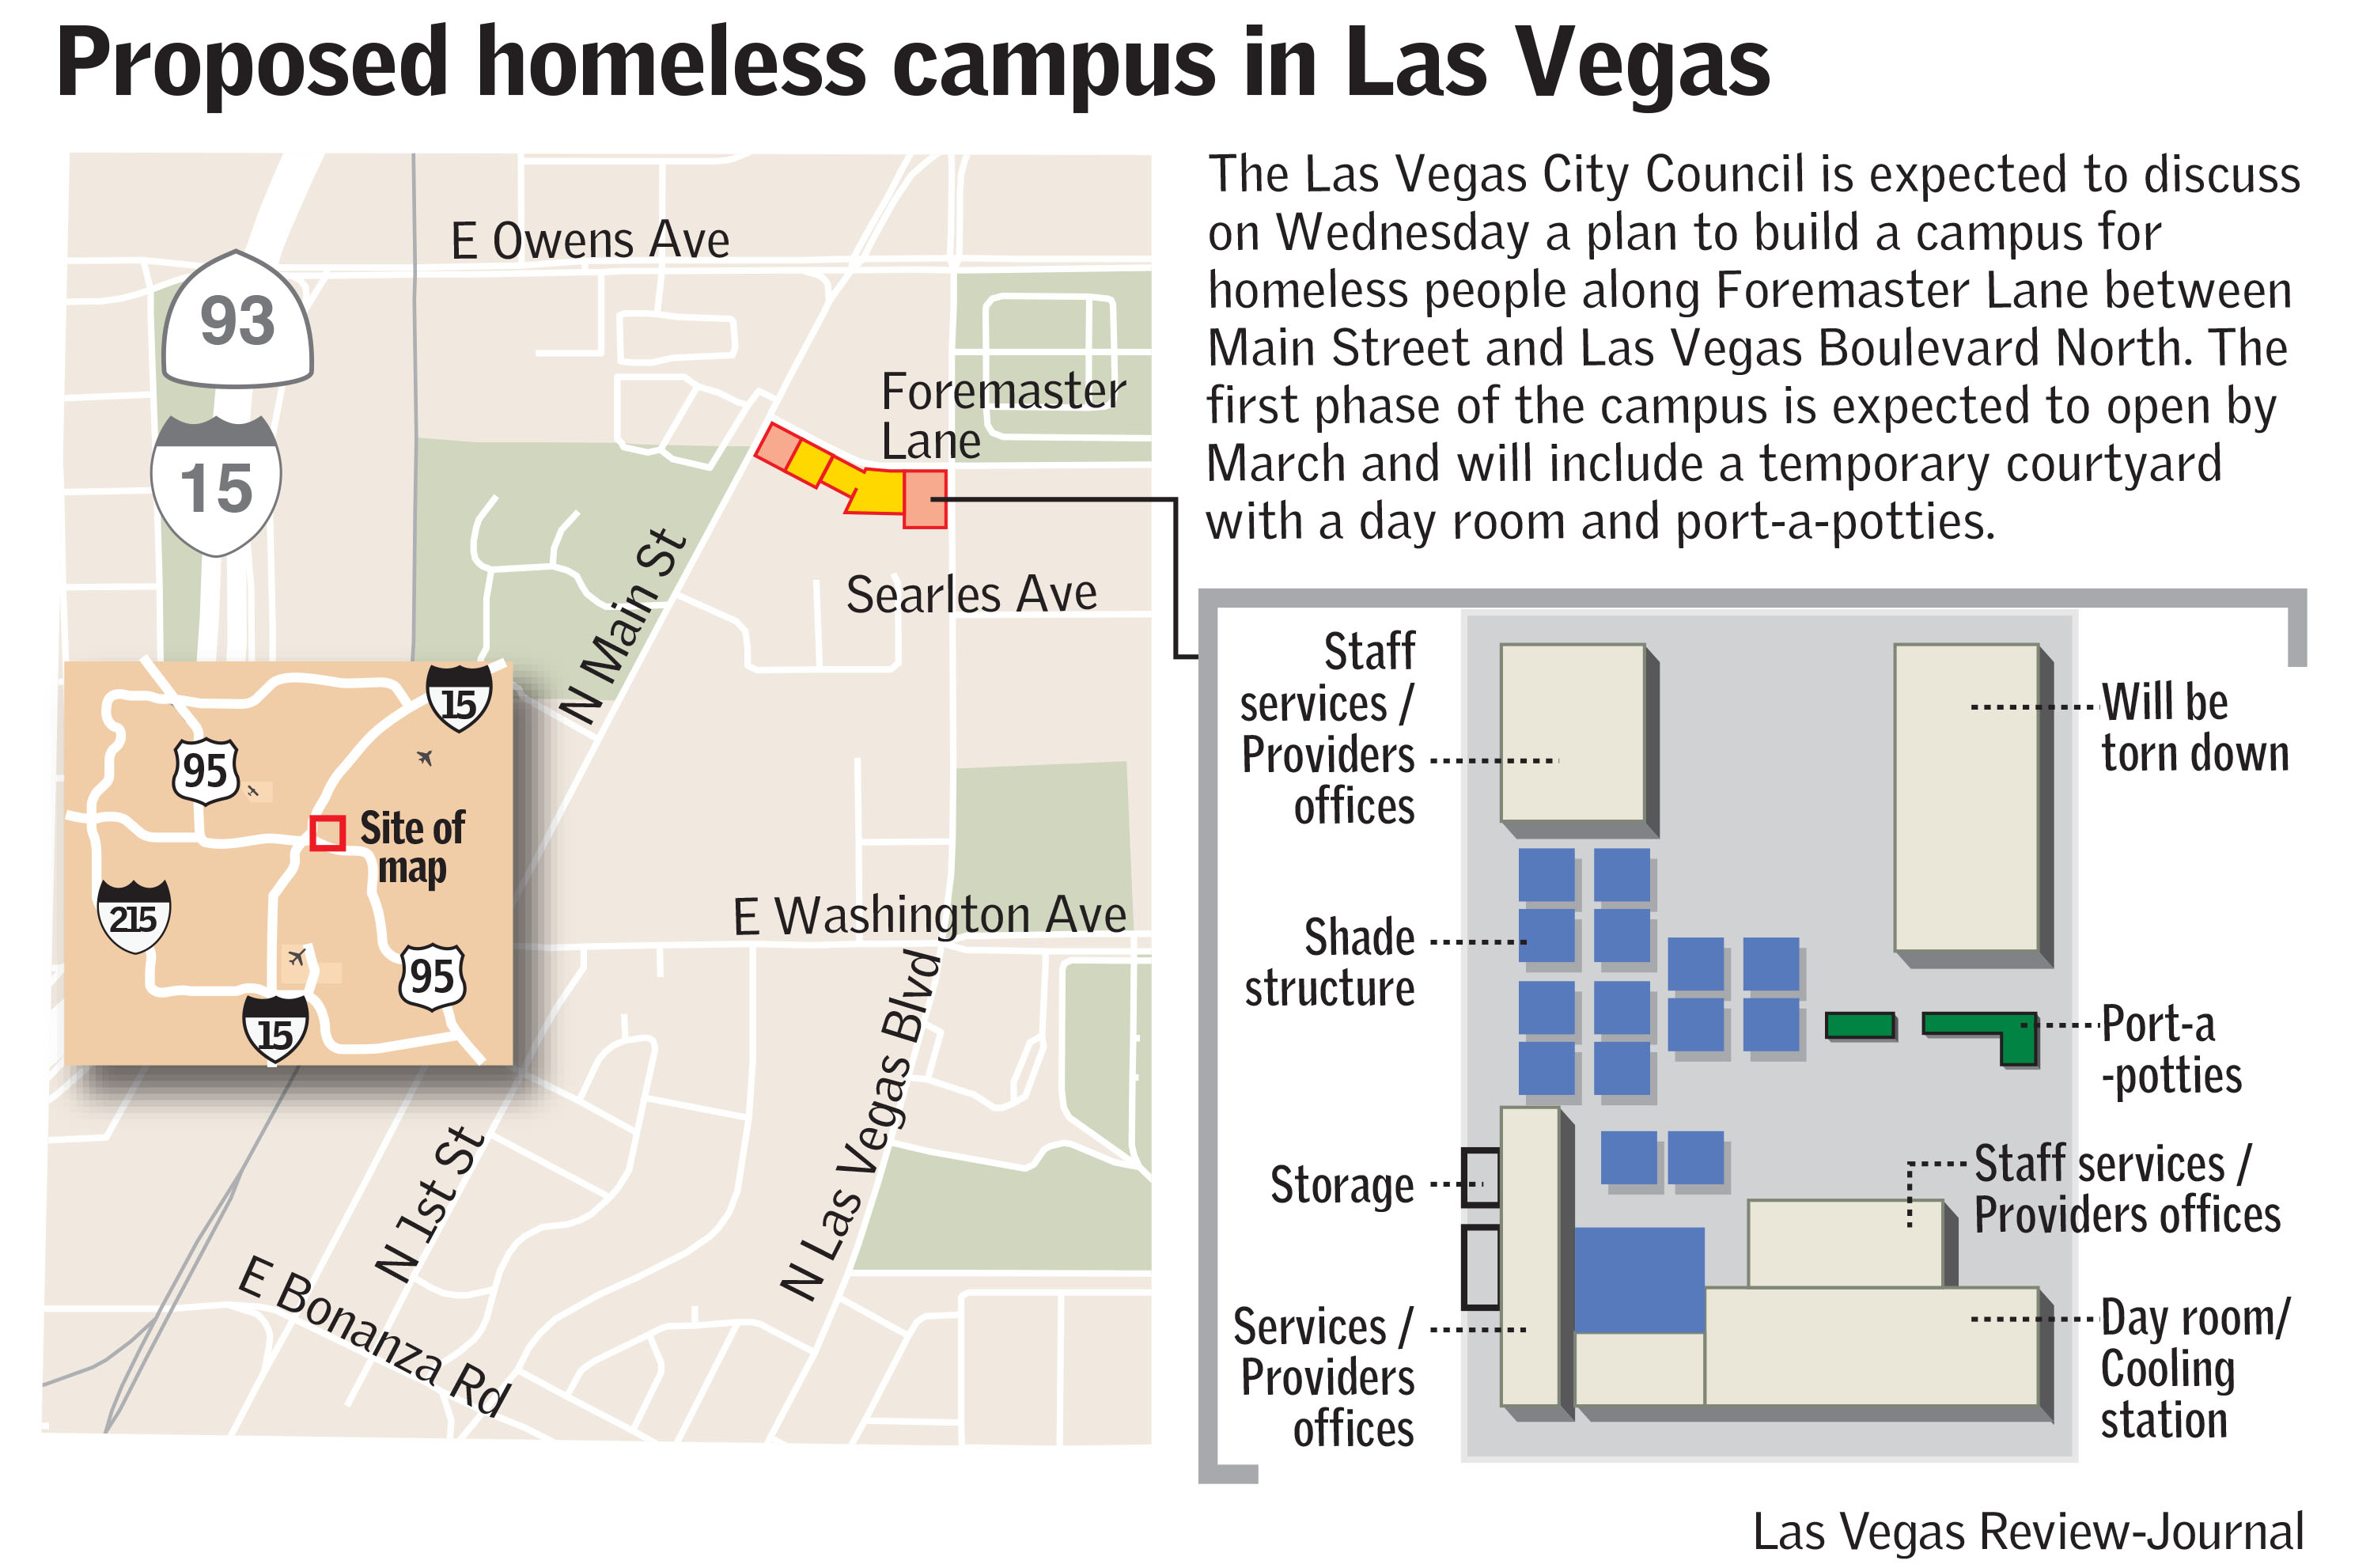 Proposed homeless campus